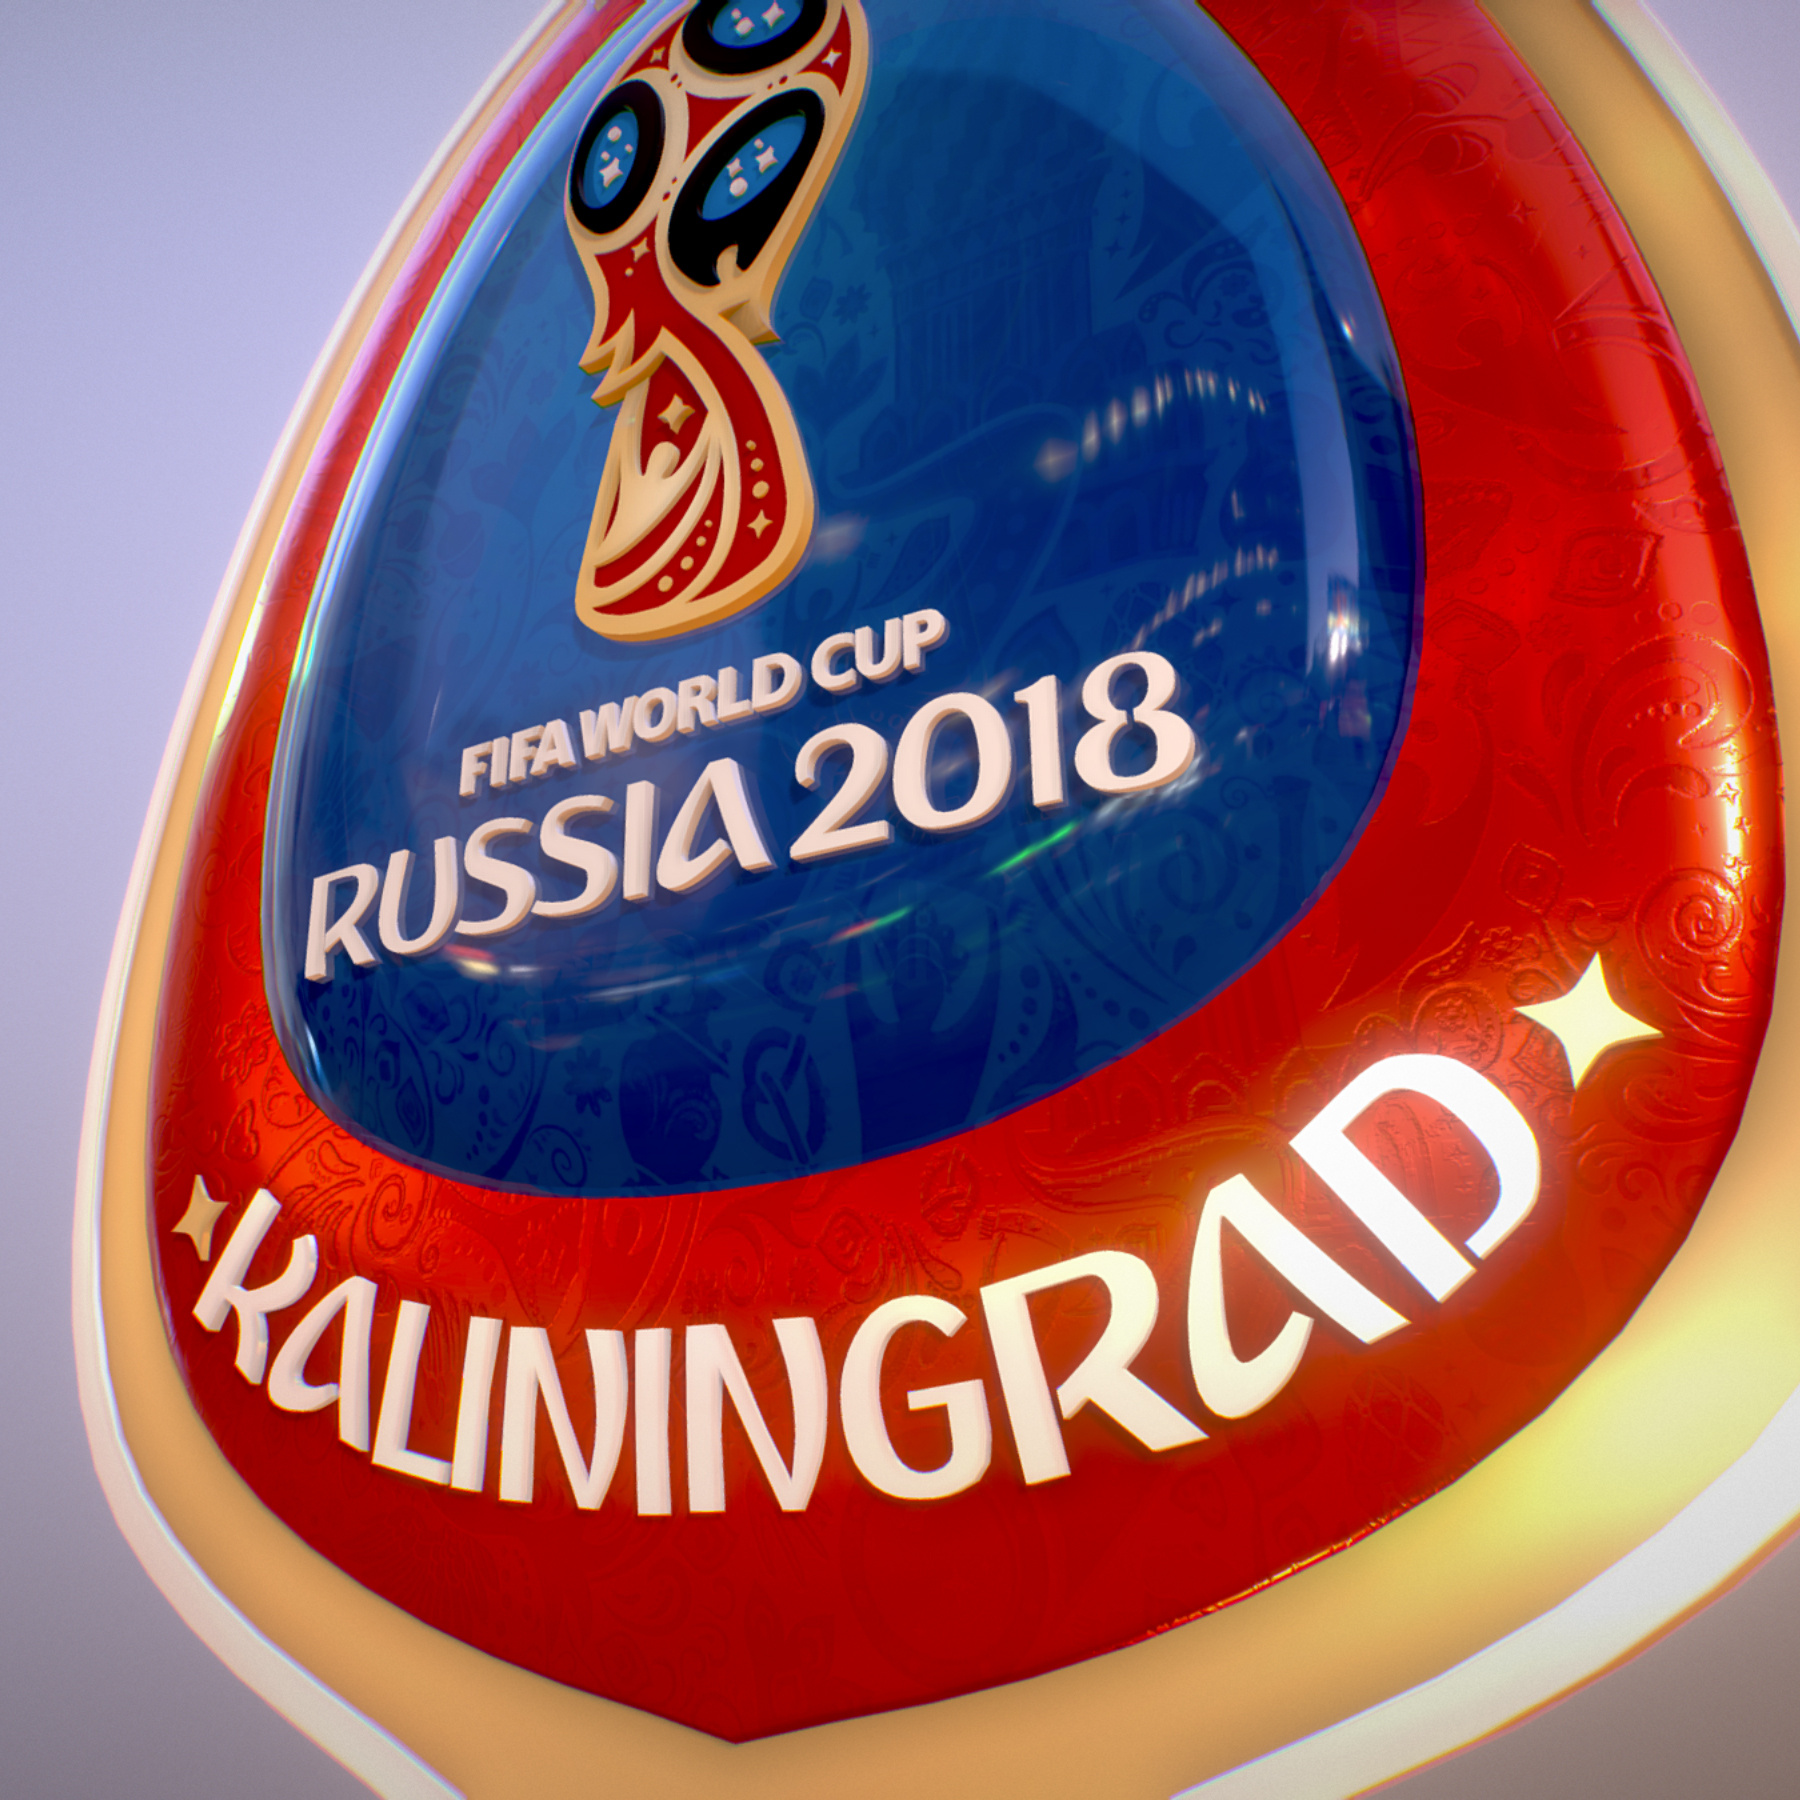 kaliningrad city world cup Rusija 2018 simbol 3d model max fbx jpeg jpg ma mb obj 271765